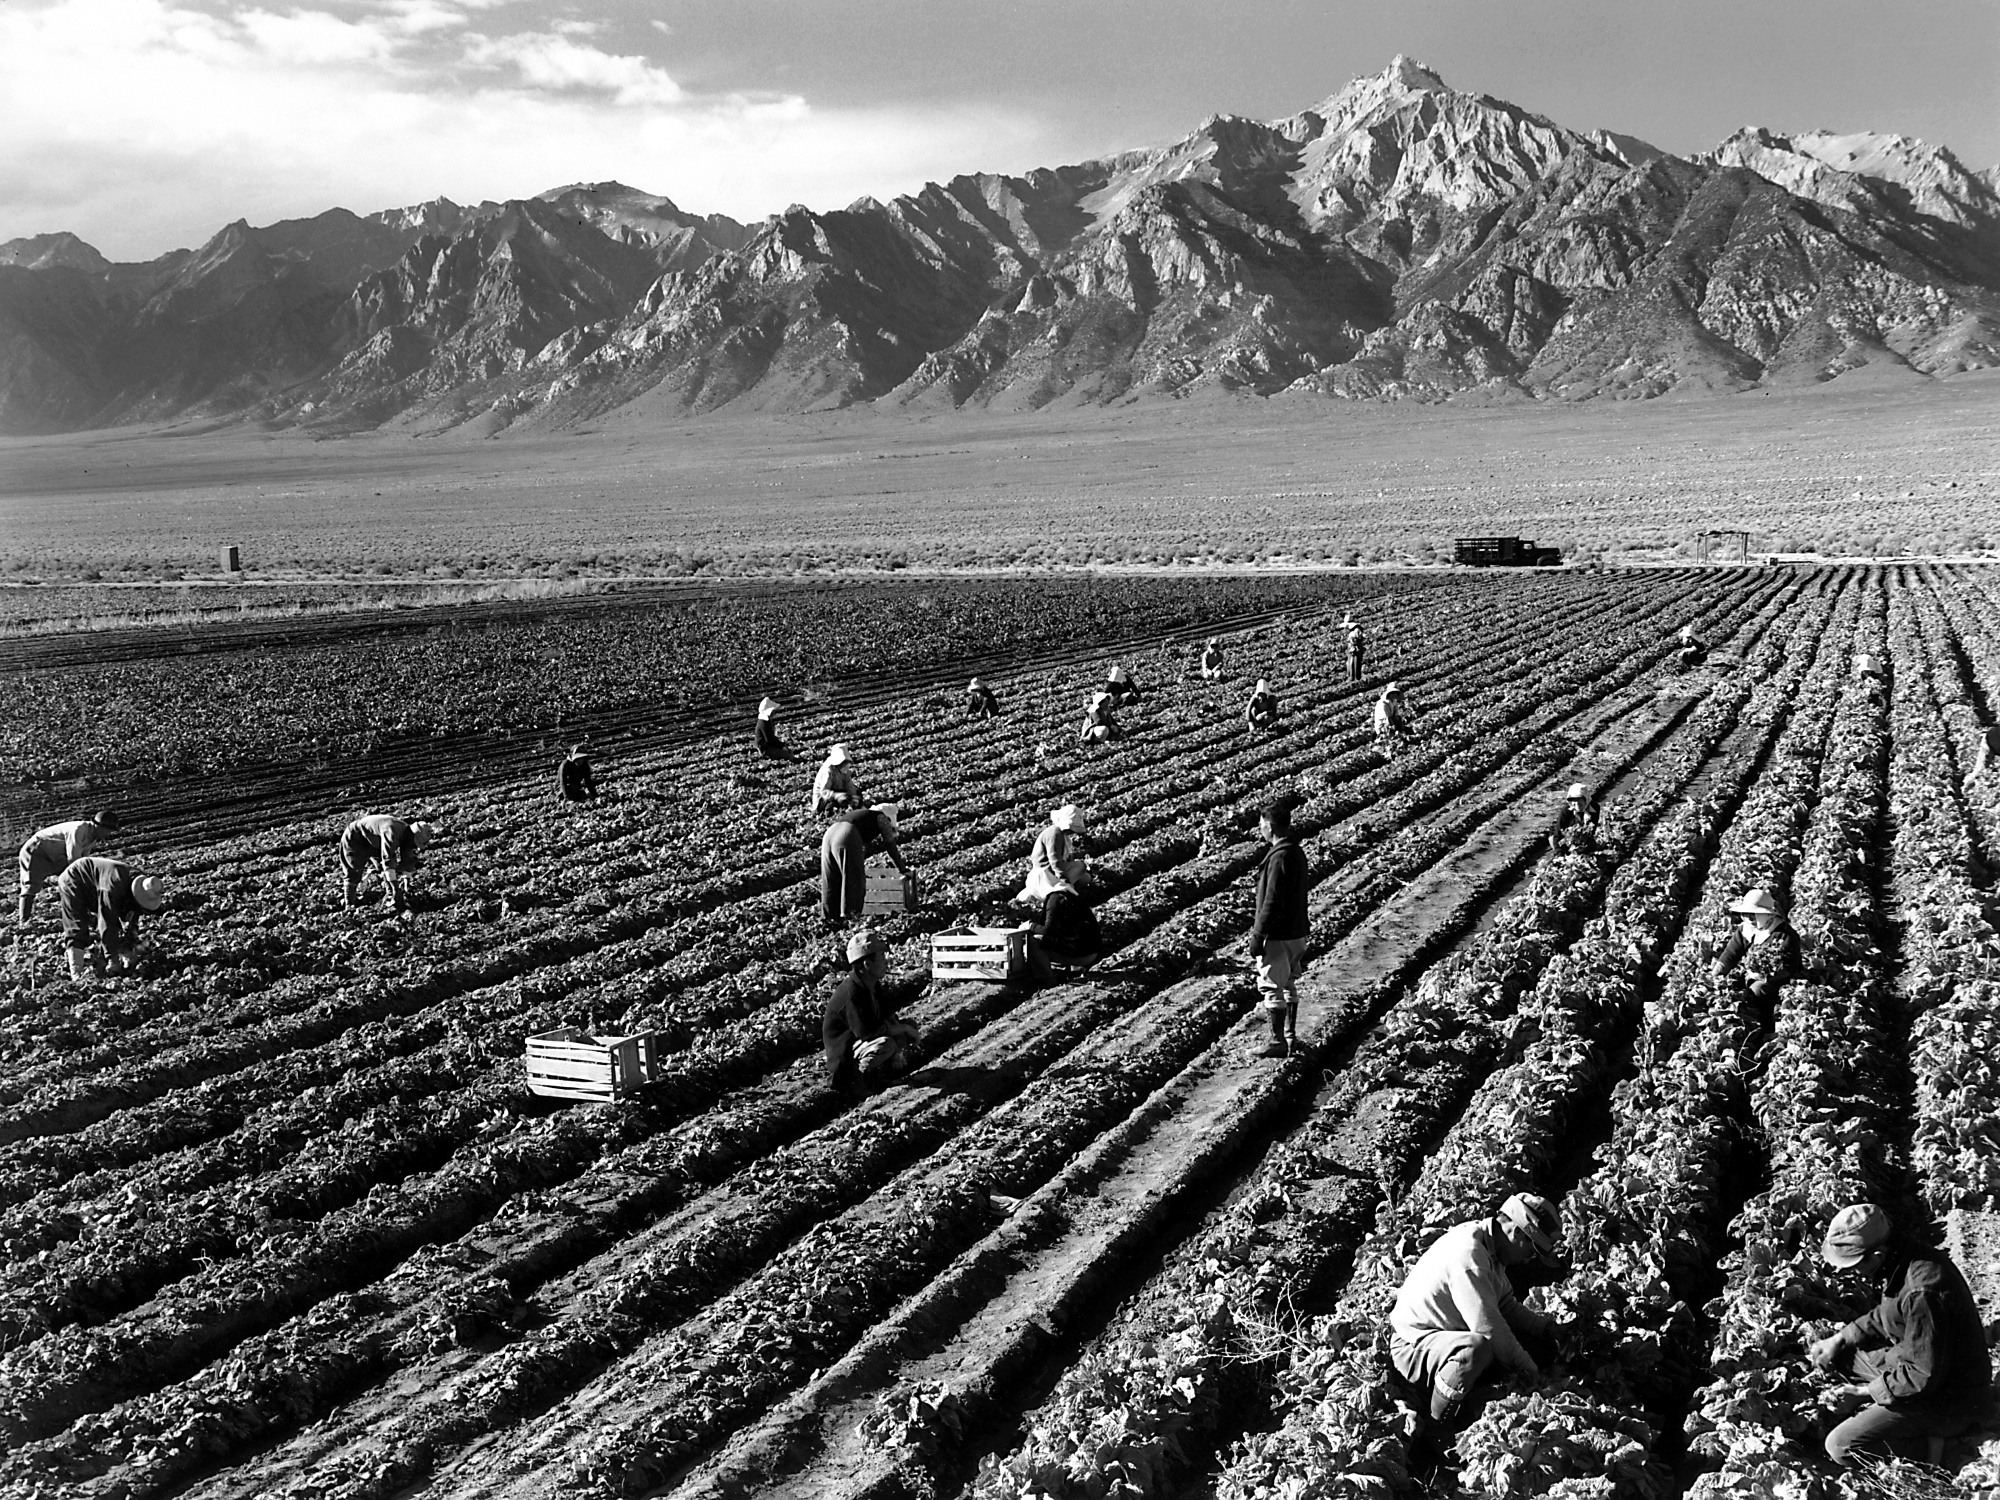 Farm, farm workers, Mt. Williamson in background, Manzanar Relocation Center, California.  Ansel Adams Photograph, 1943